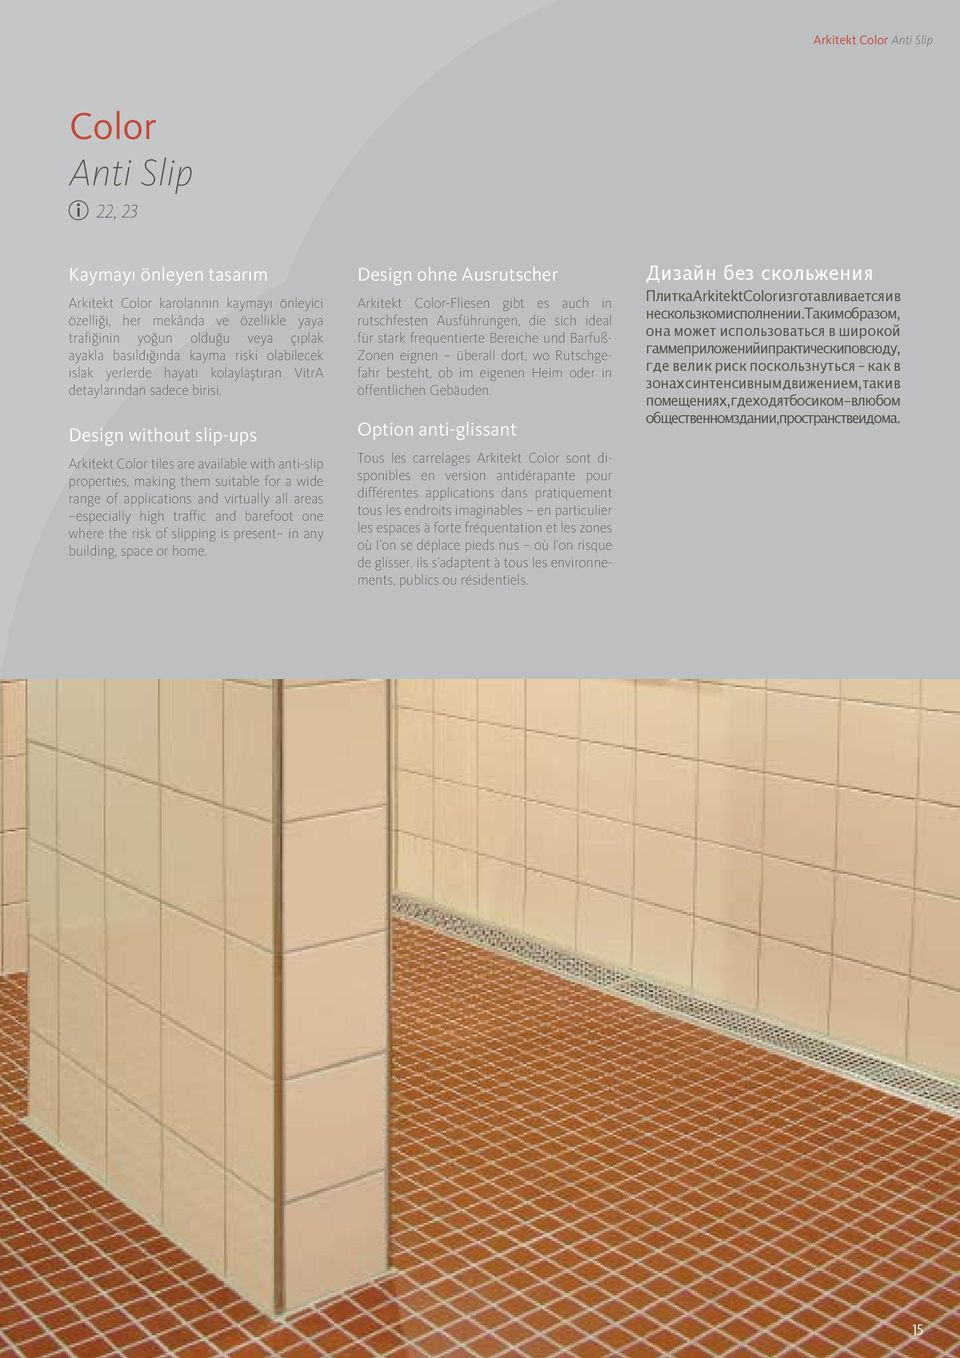 Design without slip-ups Arkitekt Color tiles are available with anti-slip properties, making them suitable for a wide range of applications and virtually all areas especially high traffic and